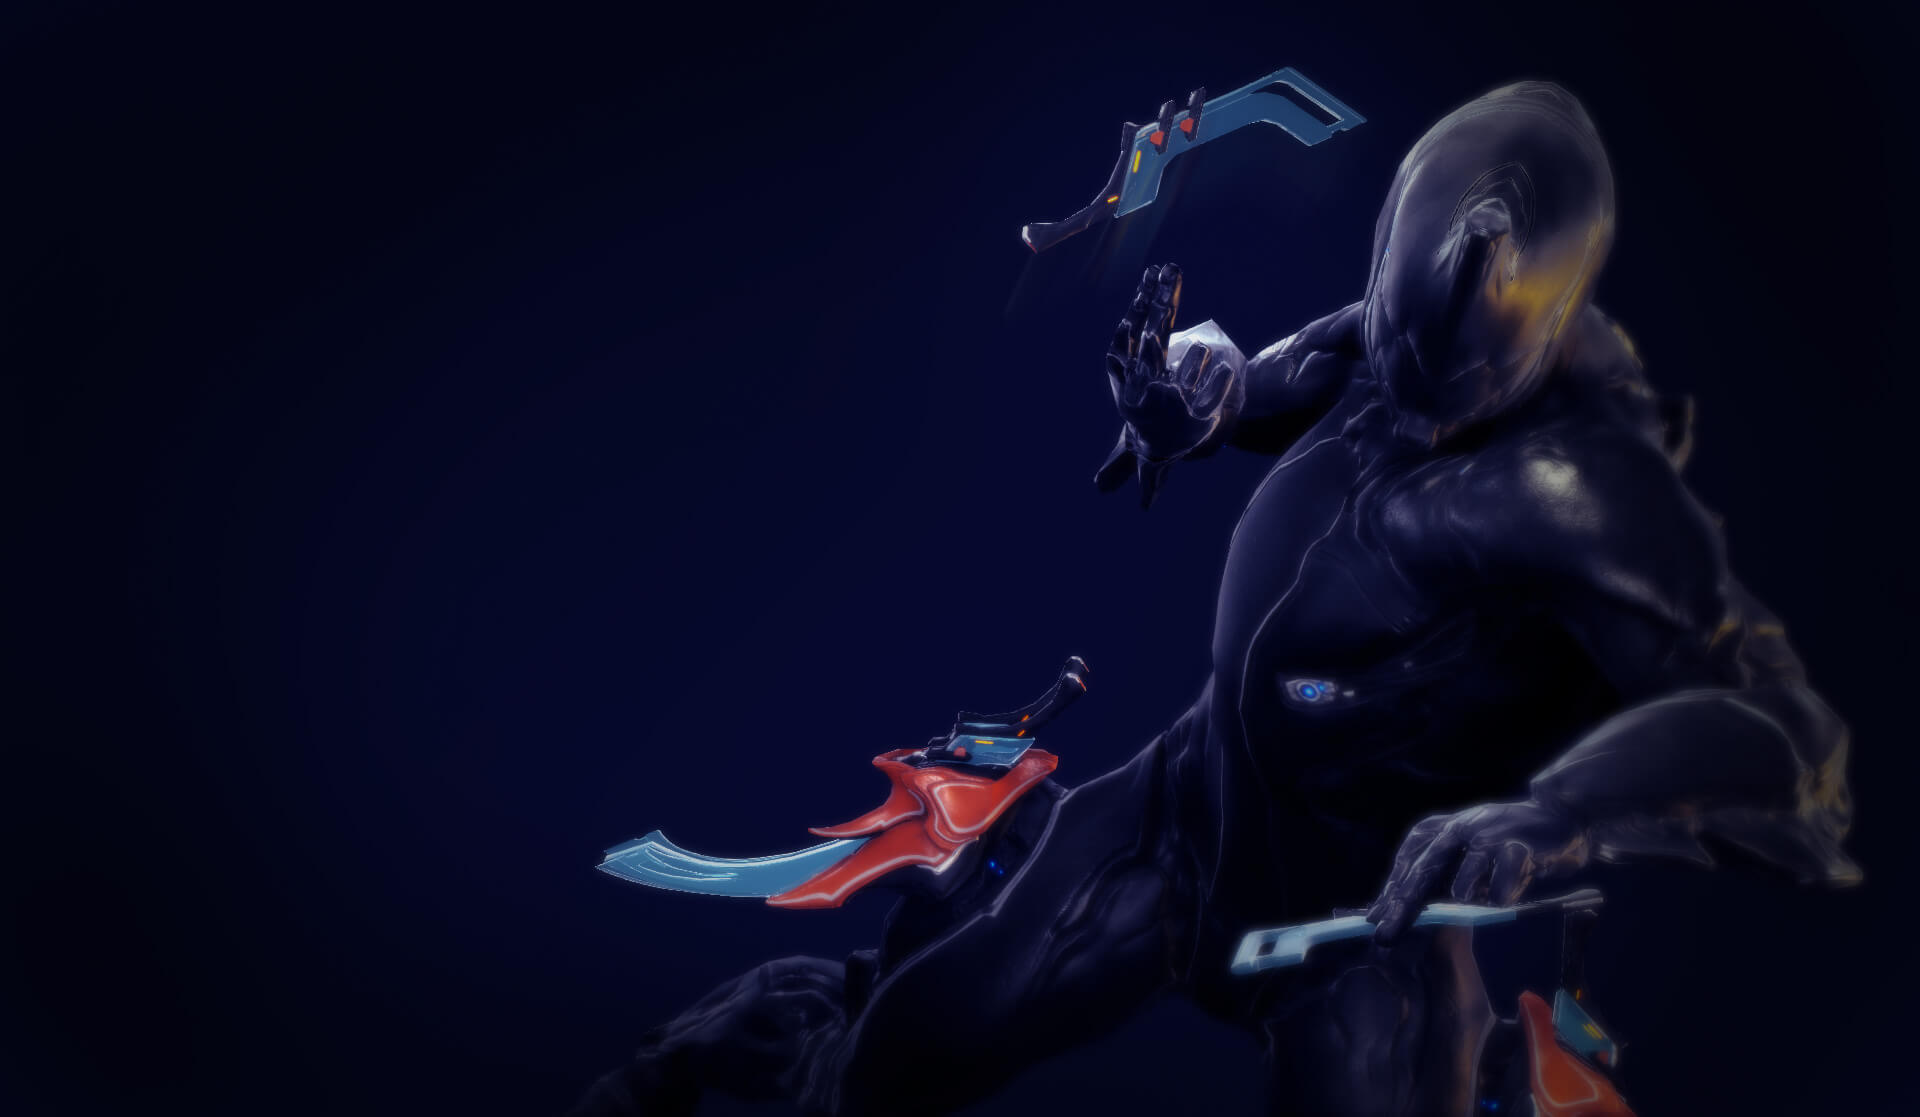 Warframe ebenen von eidolon erschien heute mit dem patch 148 silently lacerate enemies with garas signature glass throwing knives find it and its blueprint in the market today malvernweather